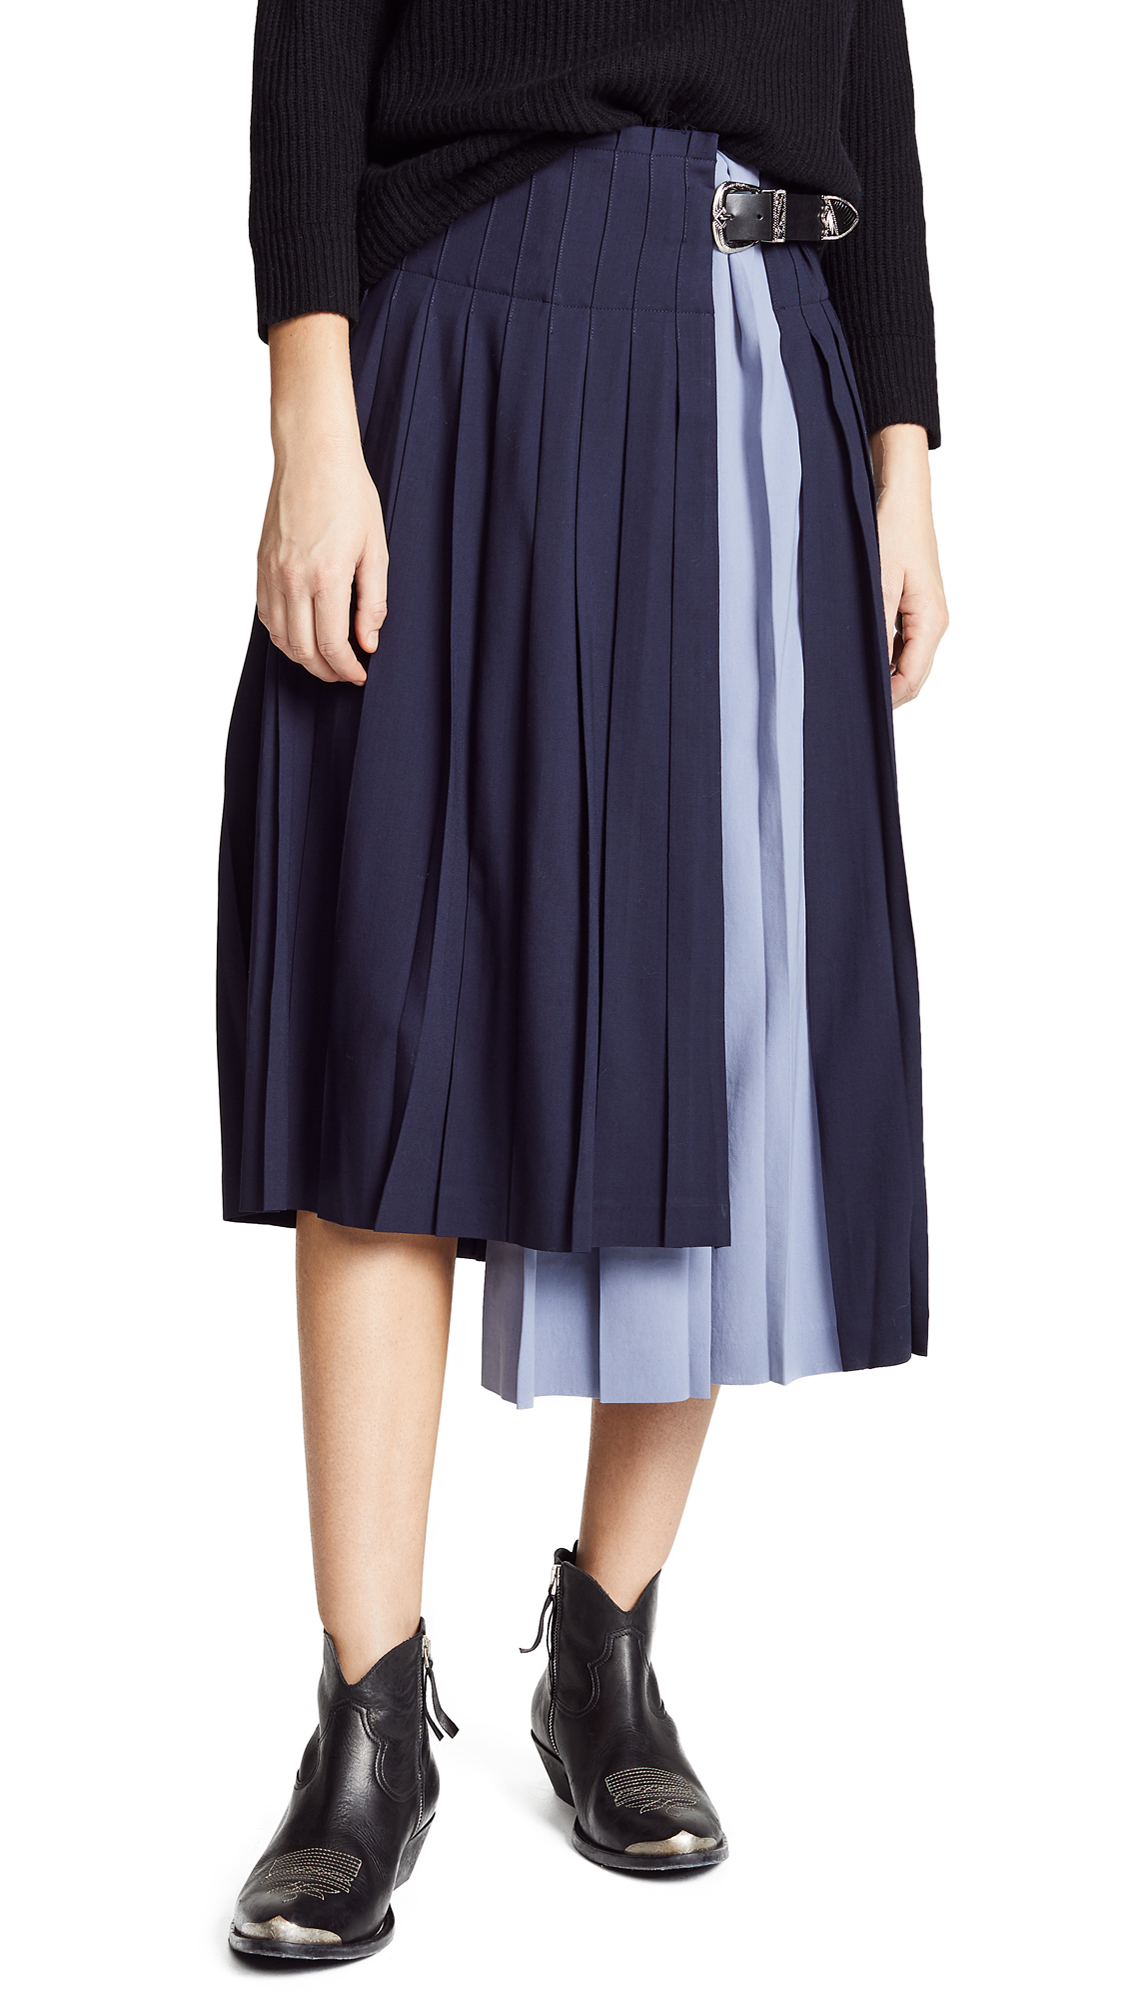 Toga Wool Pleated Skirt